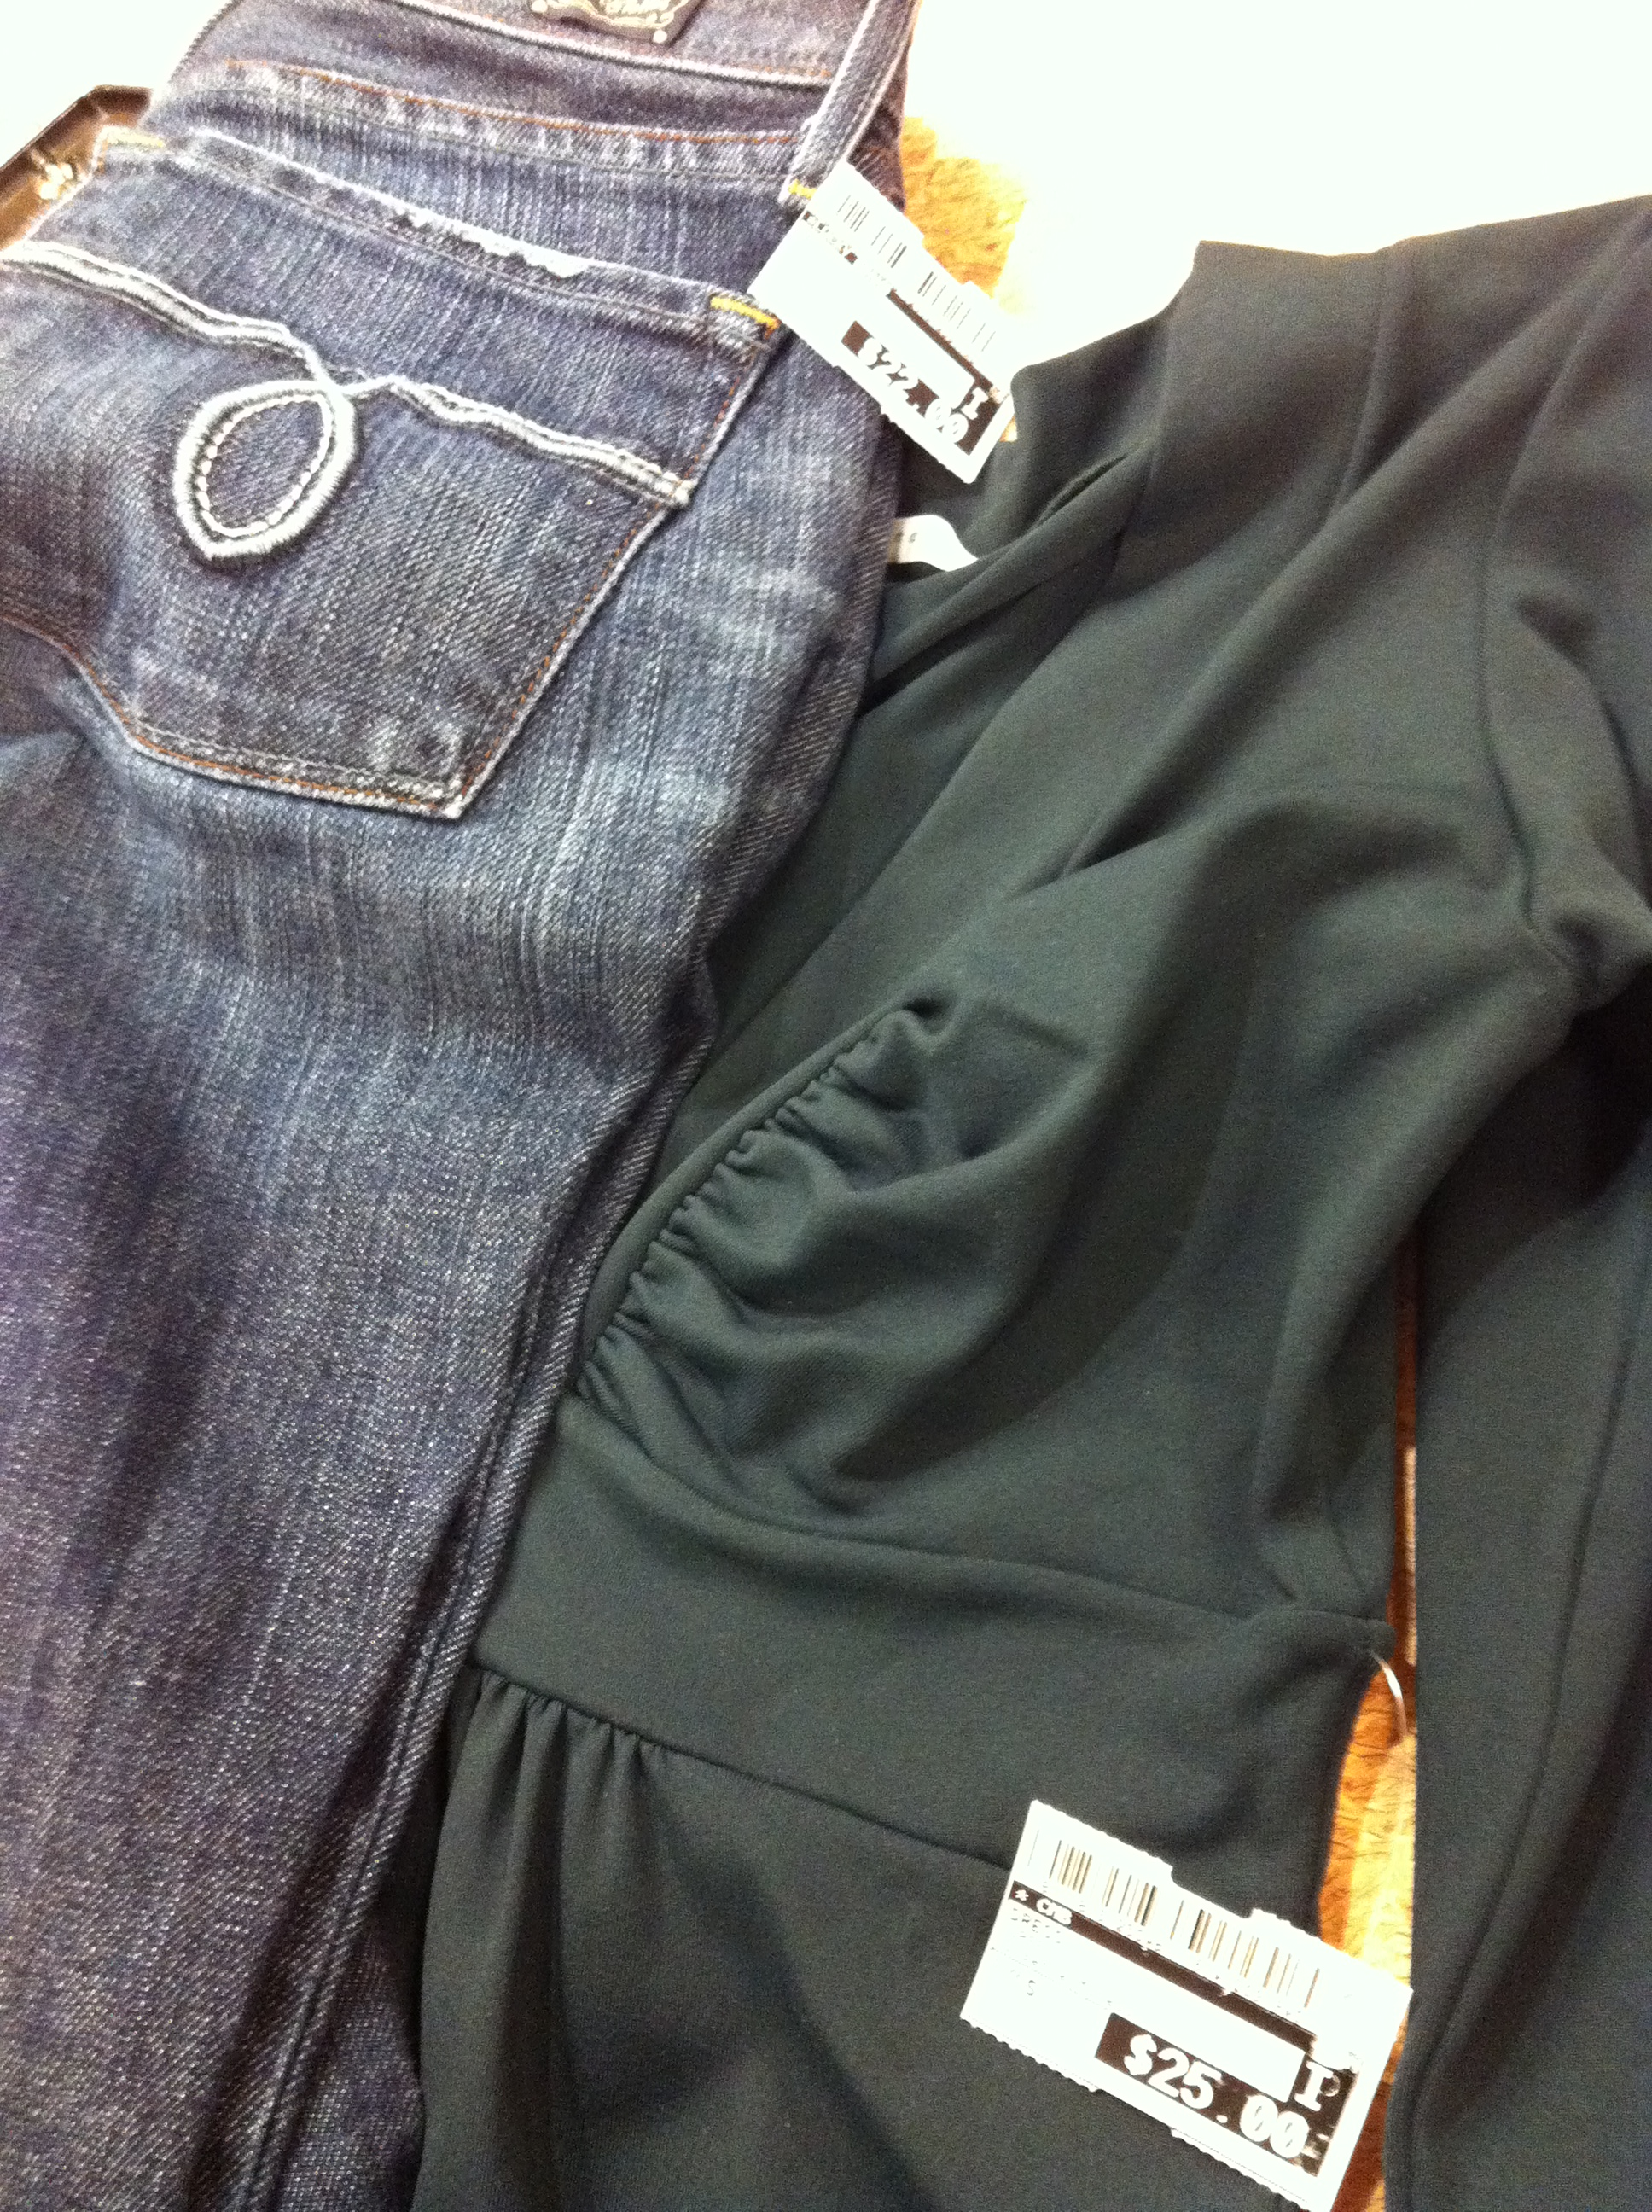 Lucky Jeans And Susanna Monaco Dress